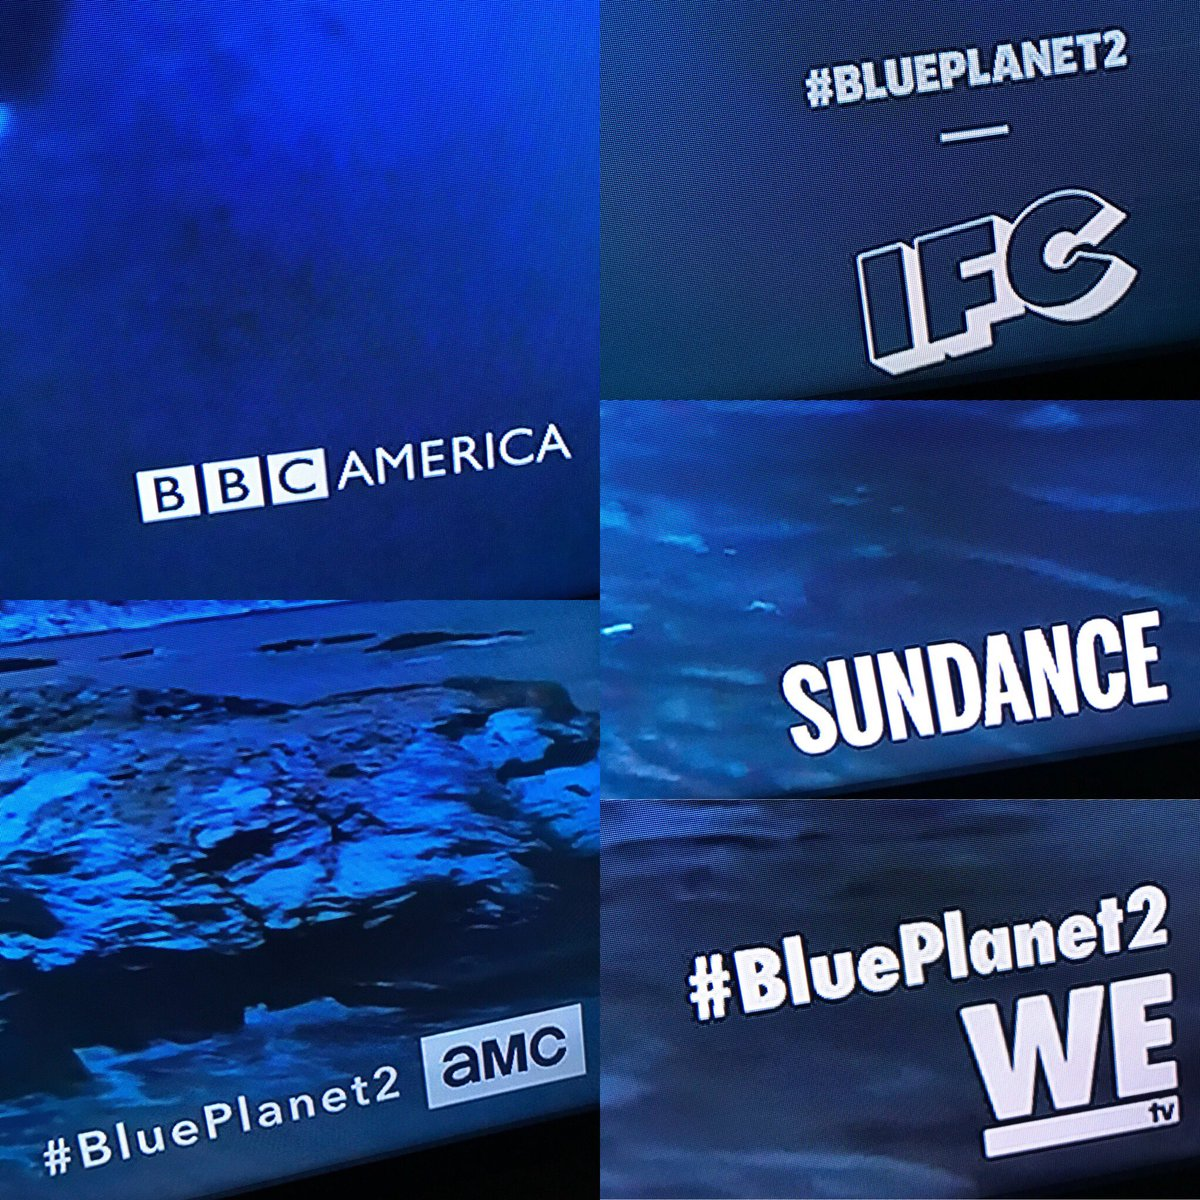 #BluePlanet2 premiere rates the rare five-network AMCN simulcast. Deserved. Picks up again next Saturday at 9 on @BBCAMERICA. https://t.co/vvl4KeNJu5